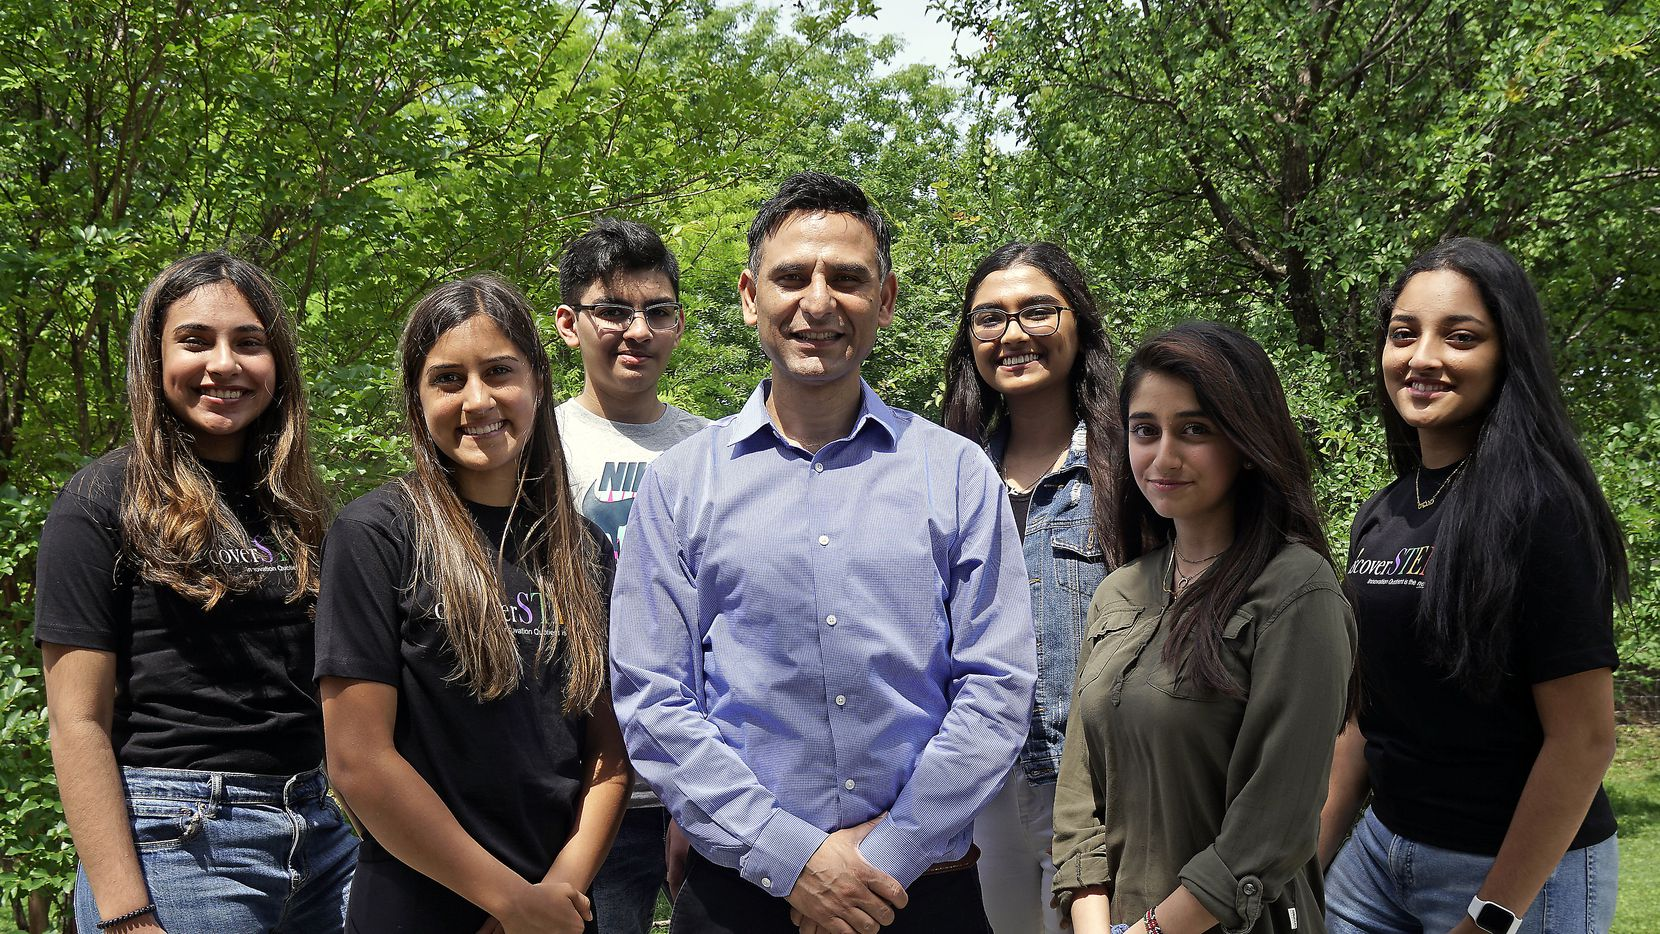 Mirza Faizan (center) mentors several students through the DiscoverSTEM Academy, shown in a photograph taken before social distancing orders. More than 50 of his students have patents pending after winning international competitions. Some of his alumni have gone on to Harvard, Stanford, Duke and MIT, with cumulative scholarships totaling $3.5 million. He is shown with students (from left) Nadia Mustafa, 17; Maya Kusumakar, 14; Hisham Ahmed, 12; Ezzah Azka Rafique, 17; Inaya Sheikh, 17; and Raghavi Danduboyina, 16.